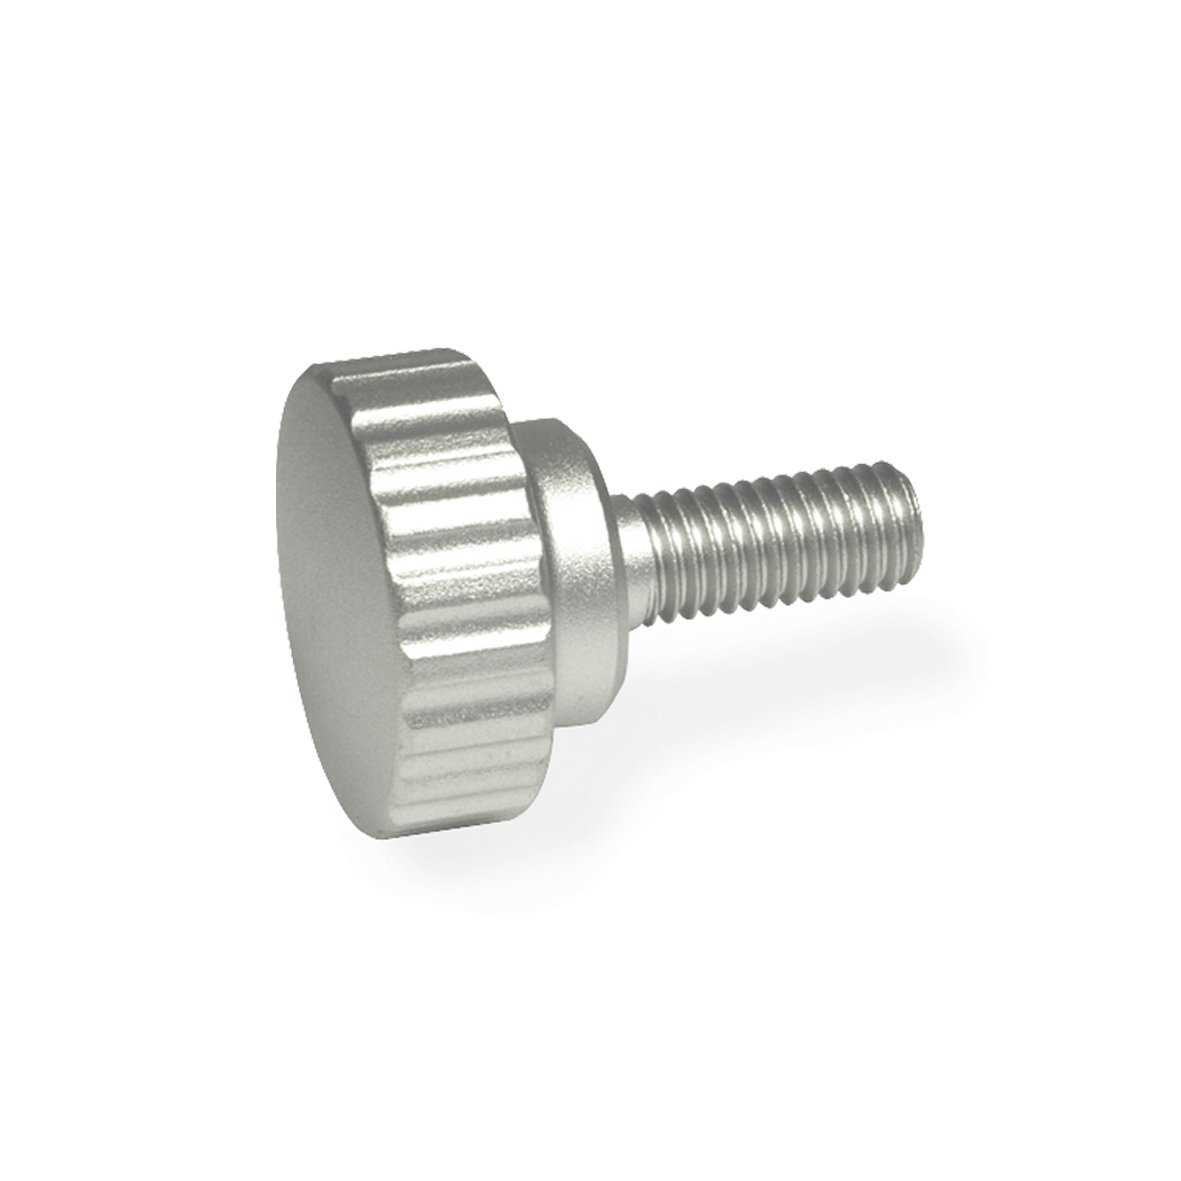 JW Winco Stainless Steel 304 Screw, Knurled, Threaded Stud, M6 x 1.0 Thread Size x 20mm Thread Length, 24mm Head Diameter (Pack of 1)